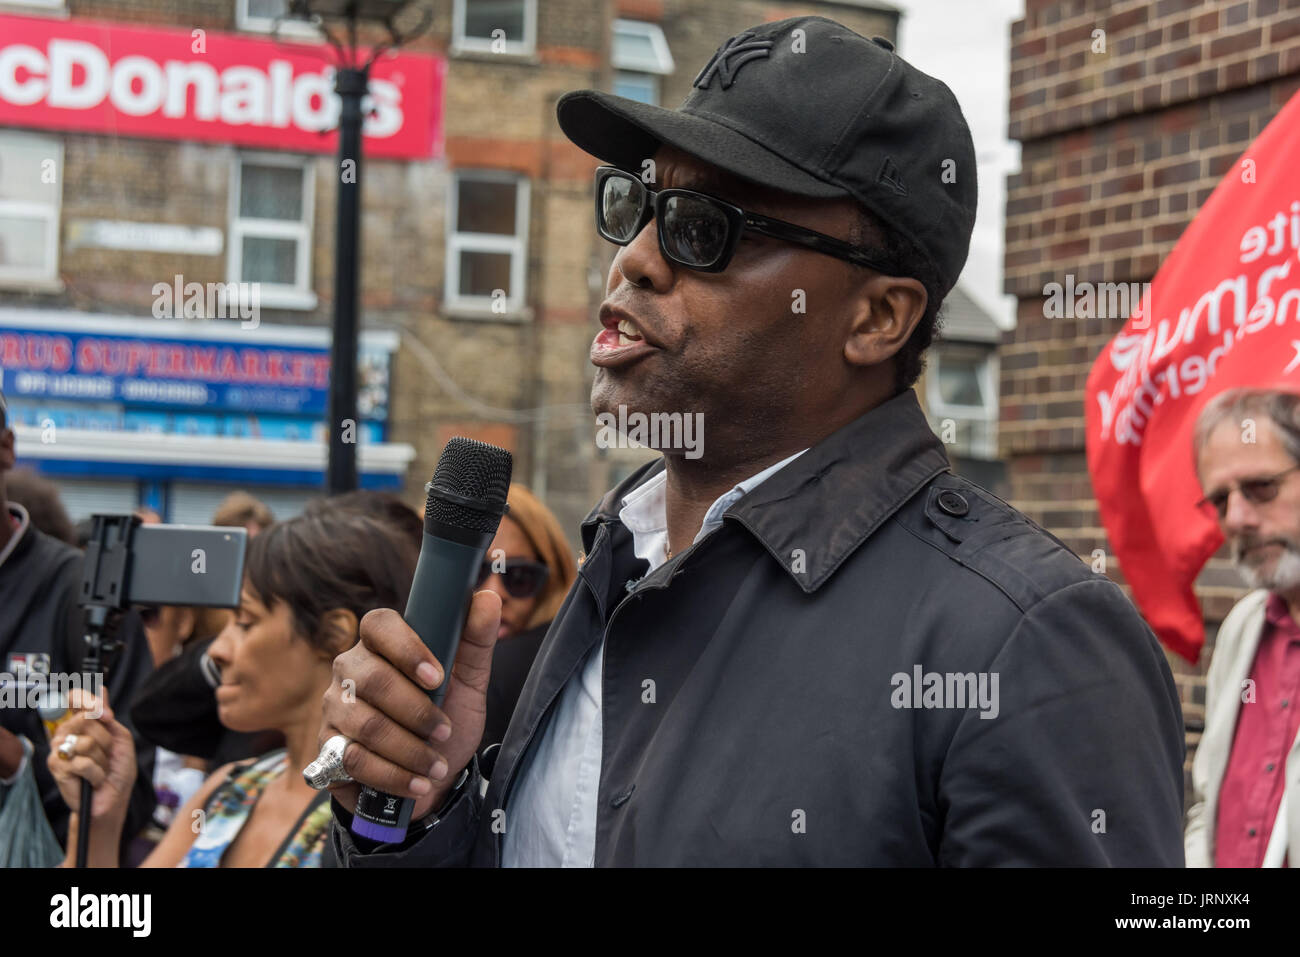 London, UK. 4th Aug, 2017. London, UK. 4th August 2017. An speaker from the Justice for Grenfell campaign gives a powerful address at the rally at Tottenham Police Station remembering the death of Mark Duggan on the sixth anniversary of his killing by police, and also the police killing of other members of the Tottenham community - Cynthia Jarrett, Joy Gardner, Roger Sylvester, Mark Duggan and Jermaine Baker and the recent murders of Rashan Charles, Darren Cumberbatch and Edson Da Costa. Led by Stafford Scott, there was poetry, a minute of silence and speeches from family members as well as - Stock Image